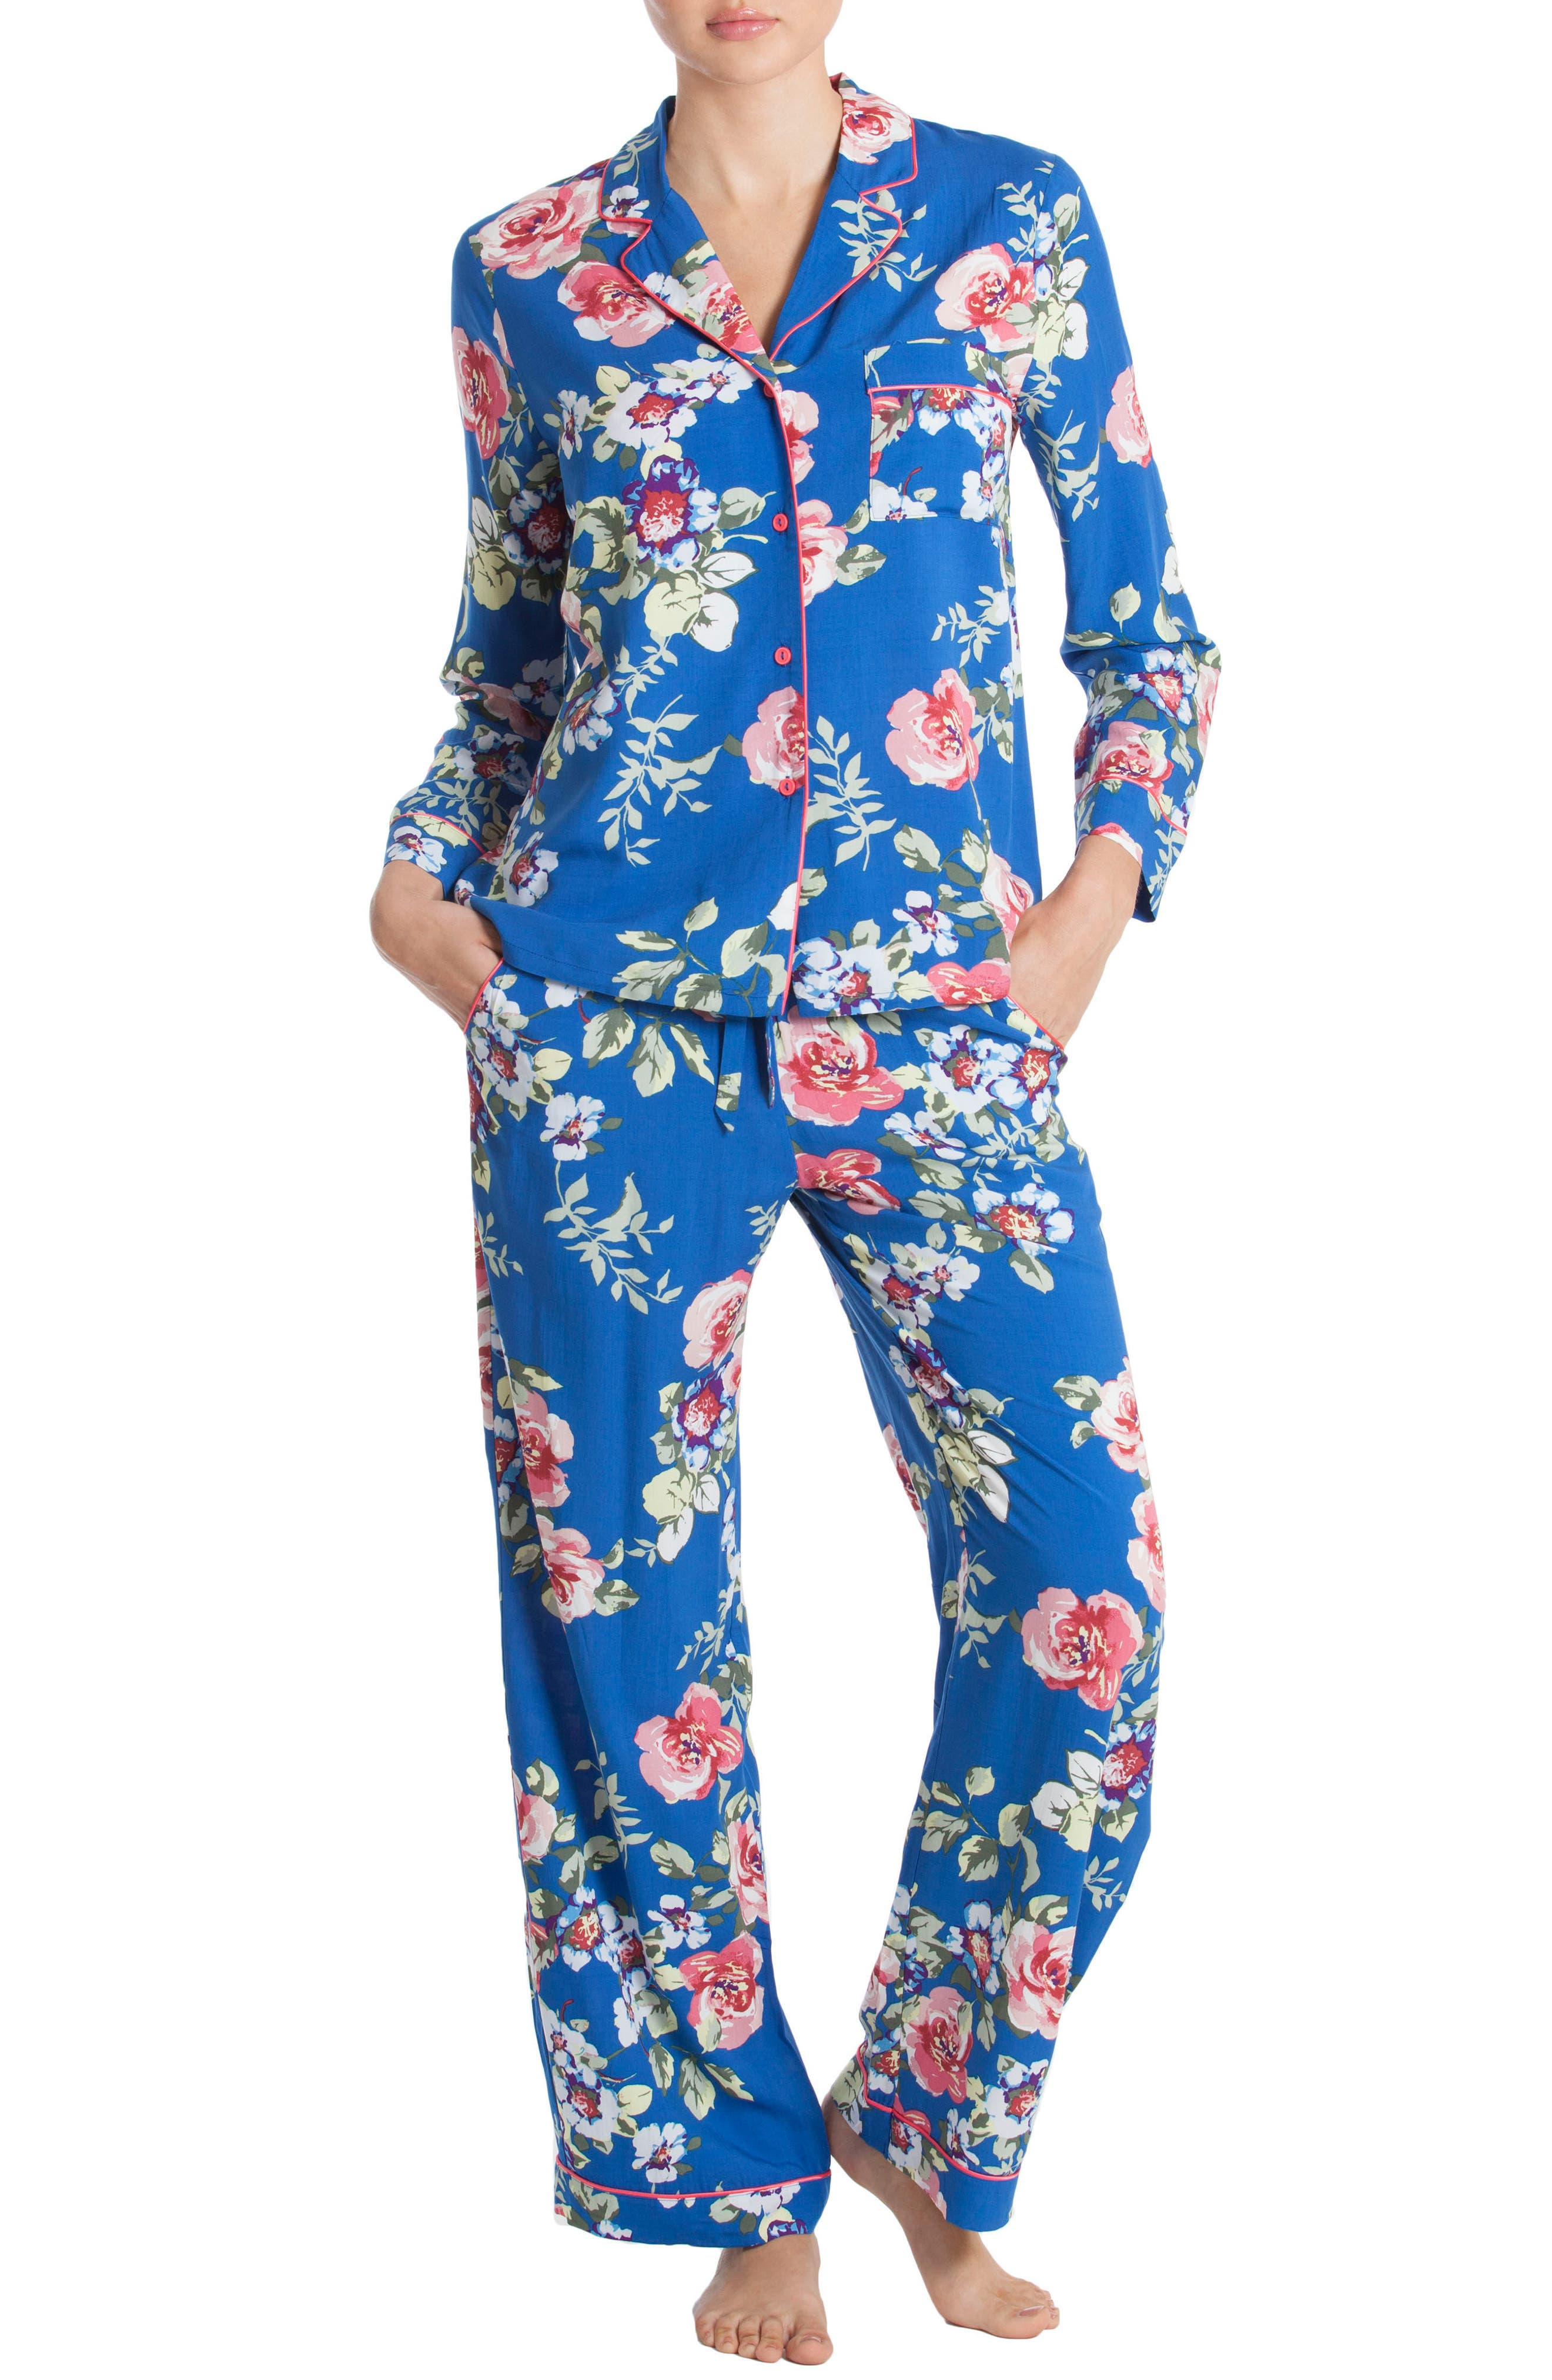 IN BLOOM BY JONQUIL Pajamas